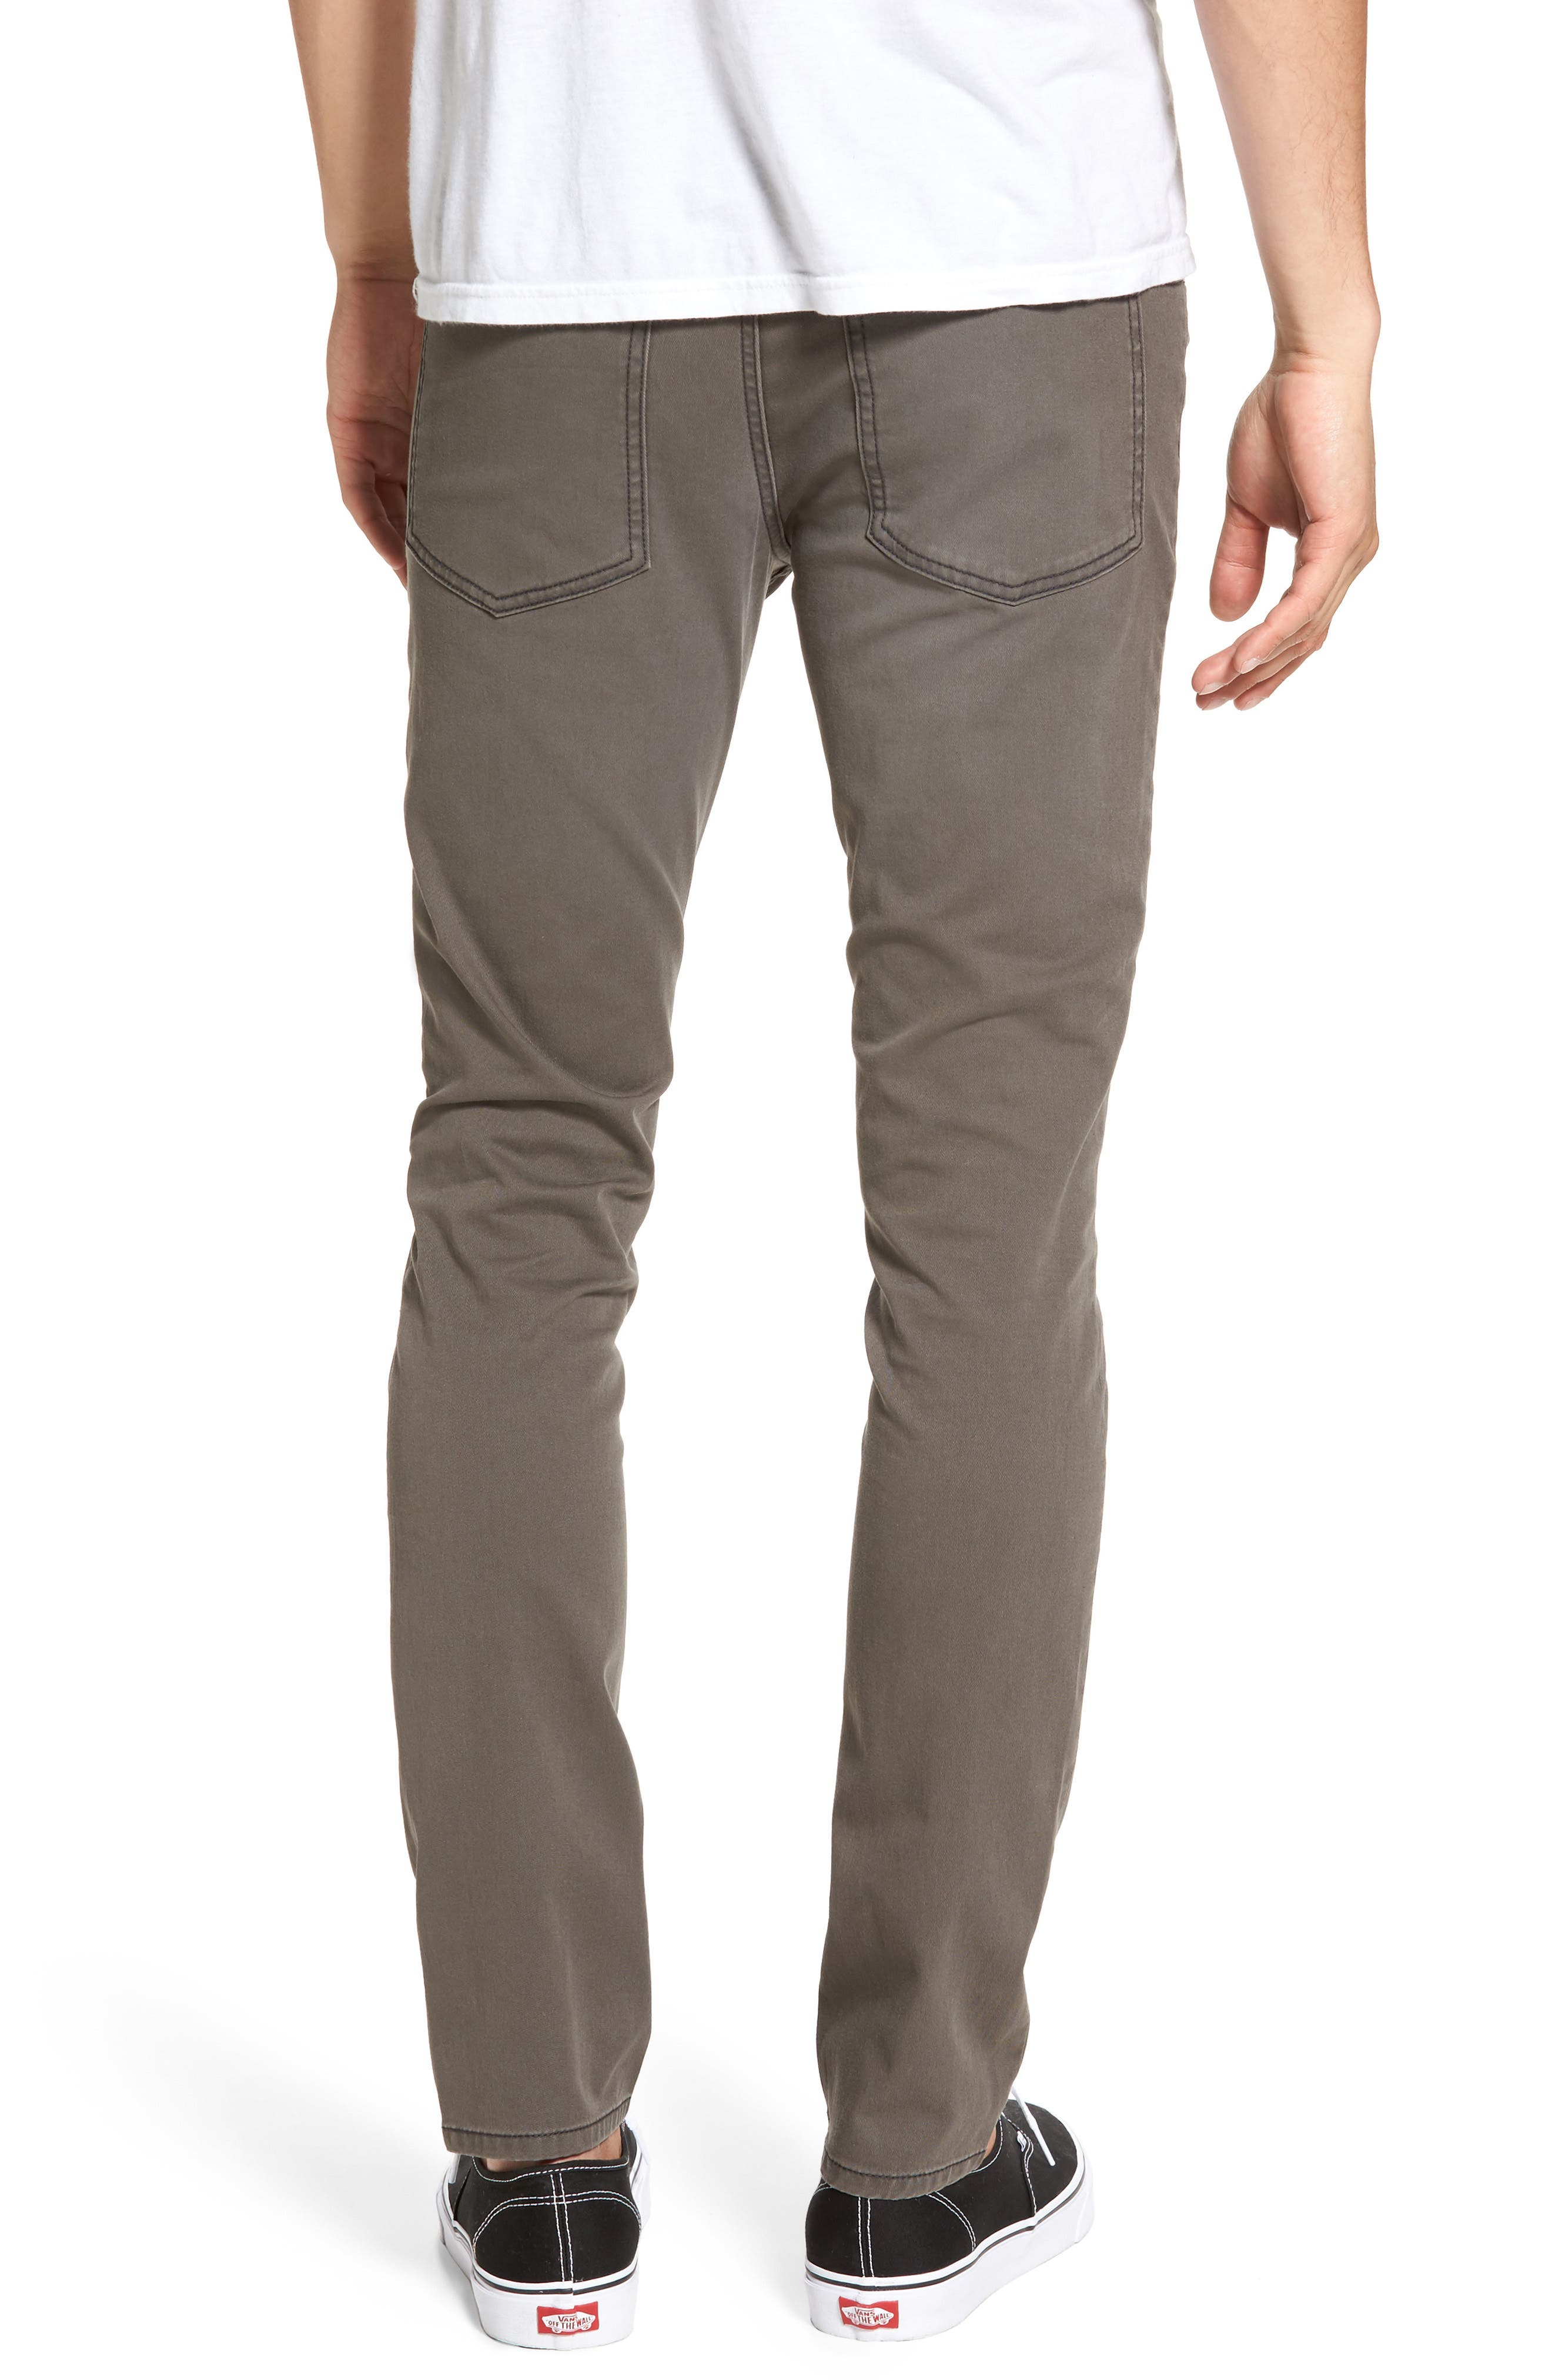 Tight Skinny Fit Jeans,                             Alternate thumbnail 2, color,                             250